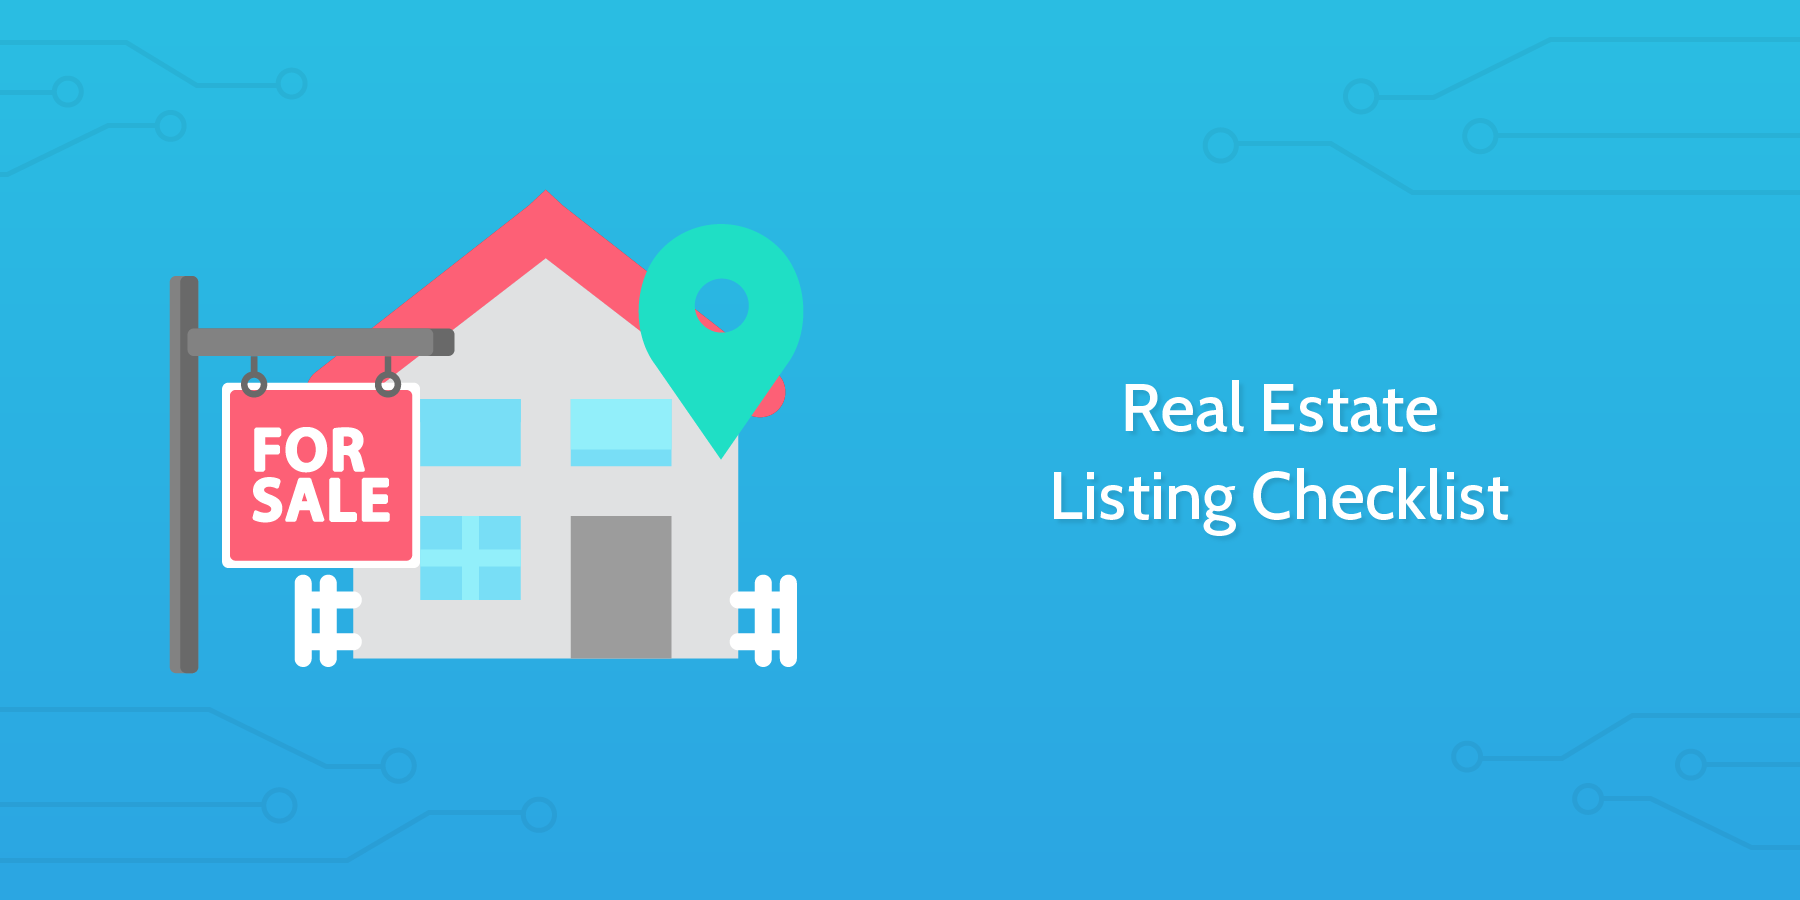 real estate closing checklist template - real estate closing checklist template gallery